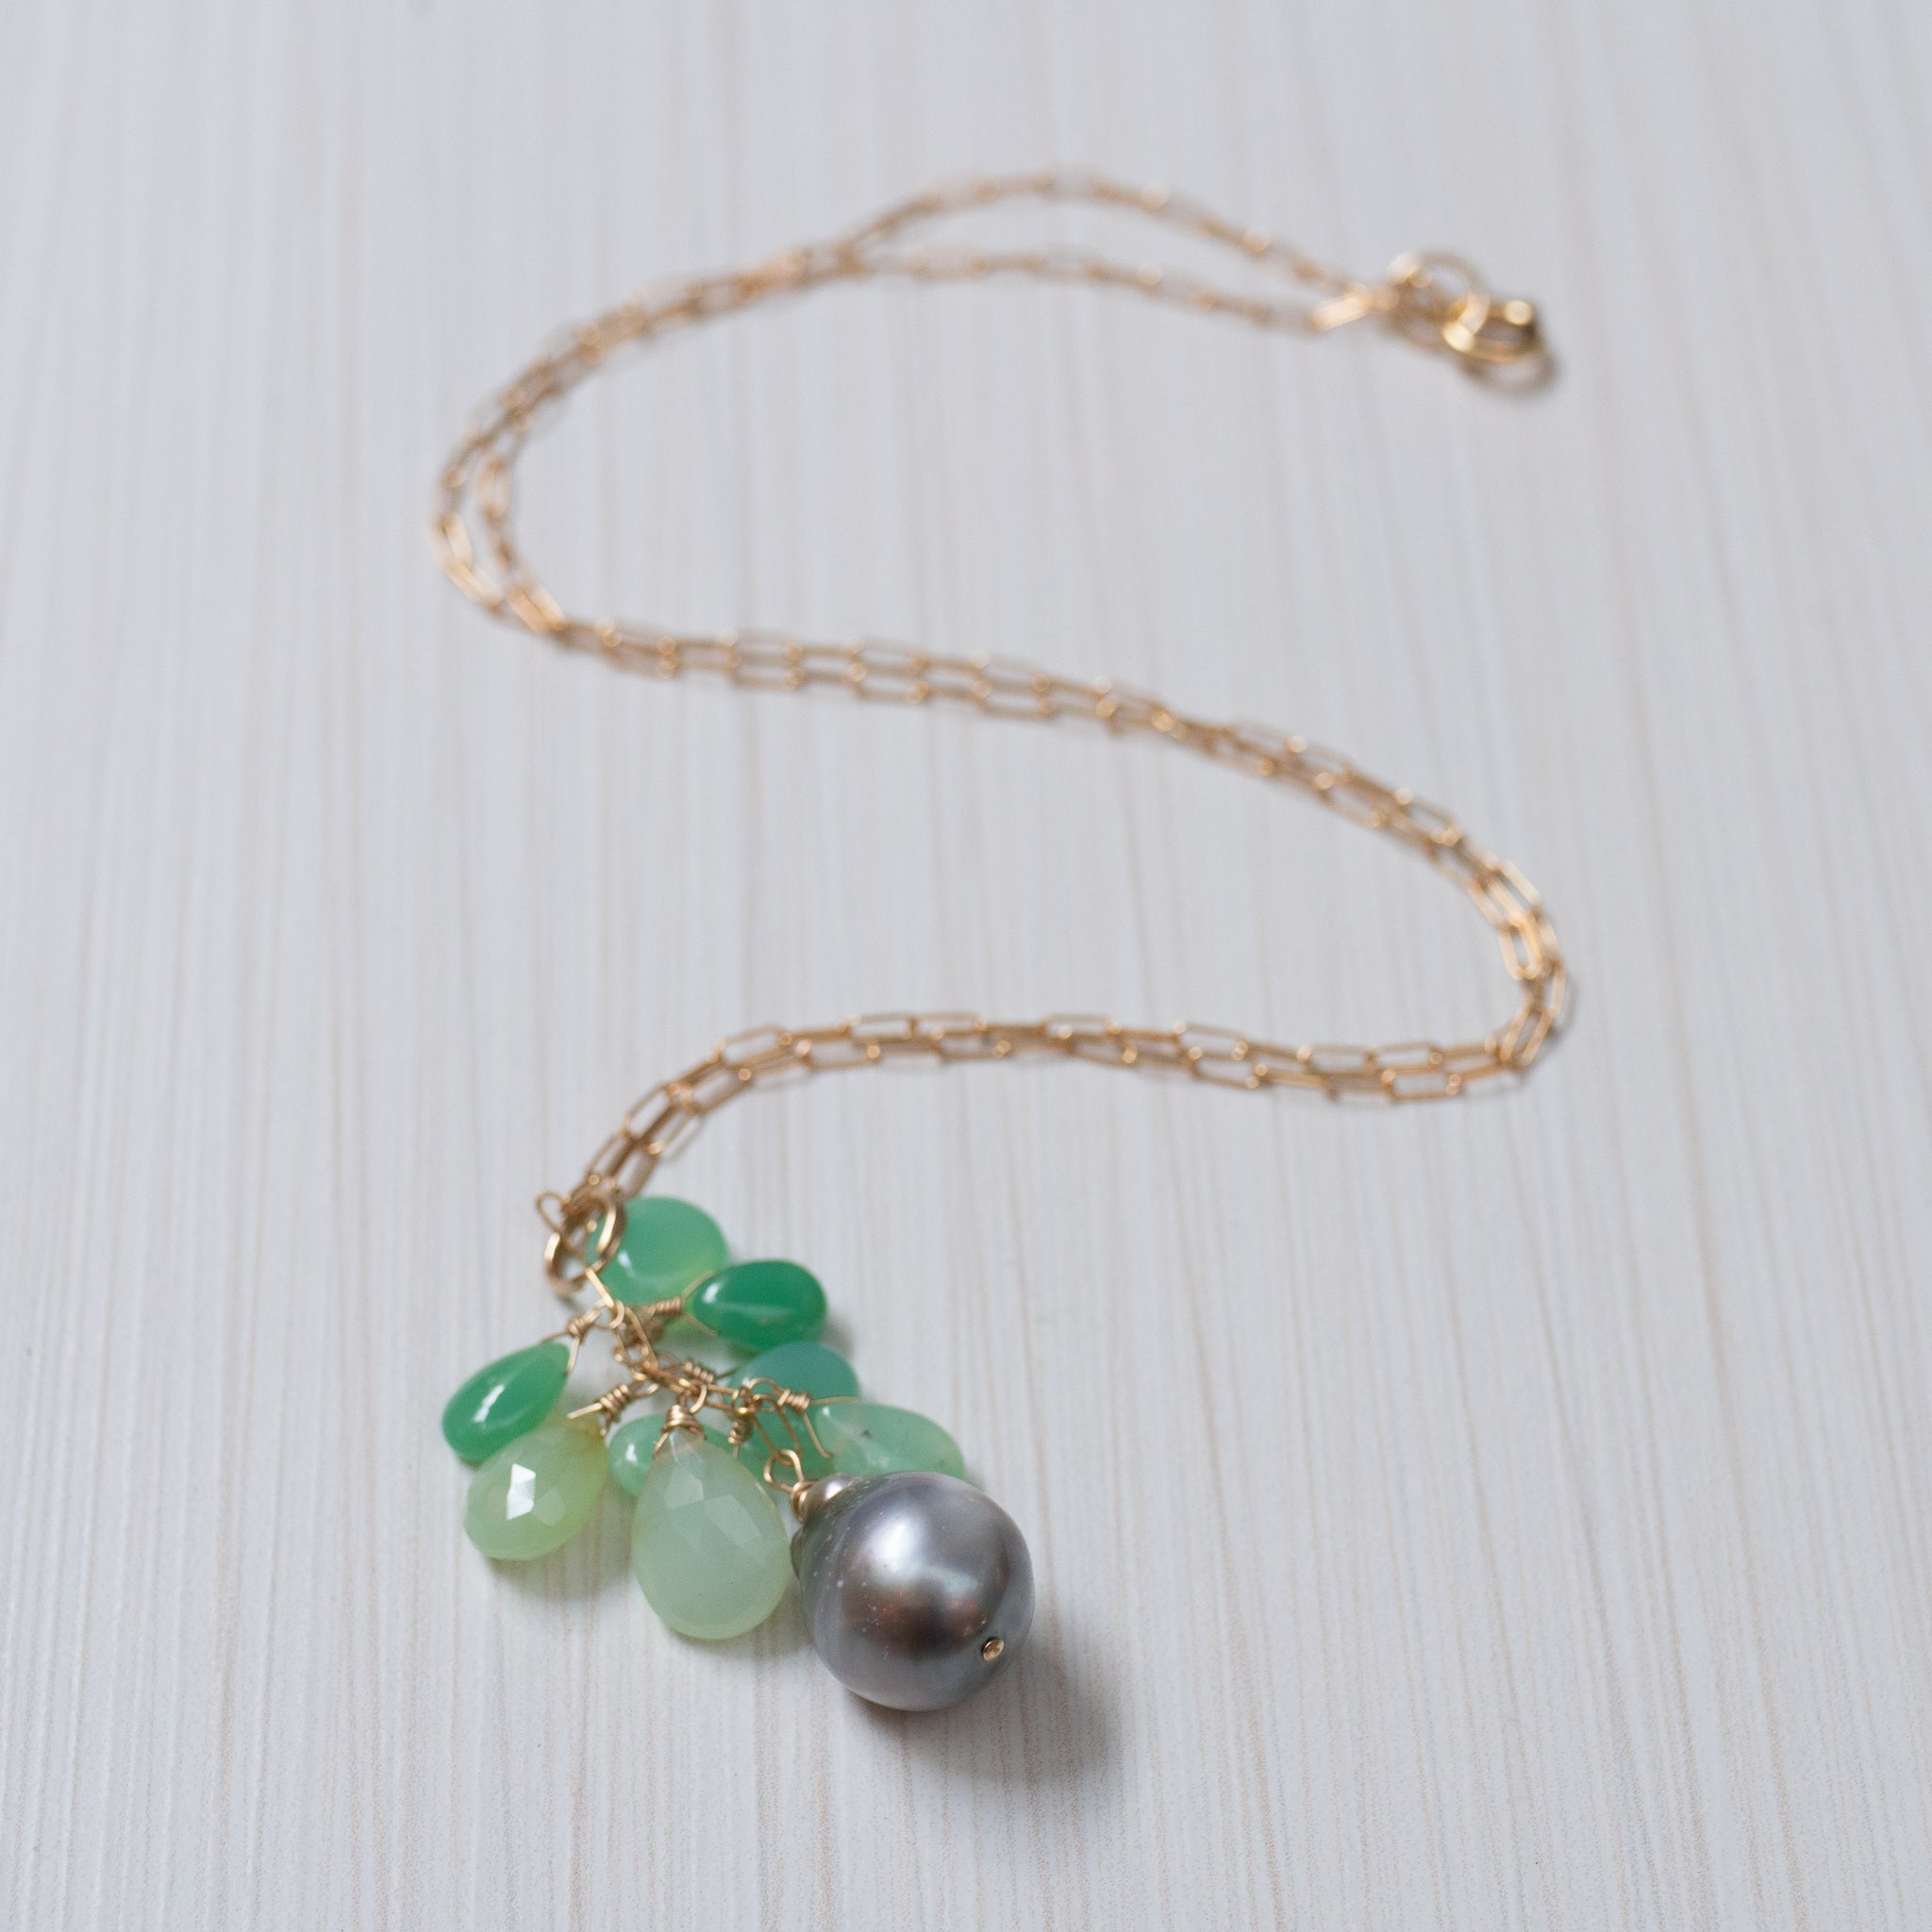 Tahitian Pearl and Chrysoprase necklace, handmade in Hawaii by Eve Black Jewelry